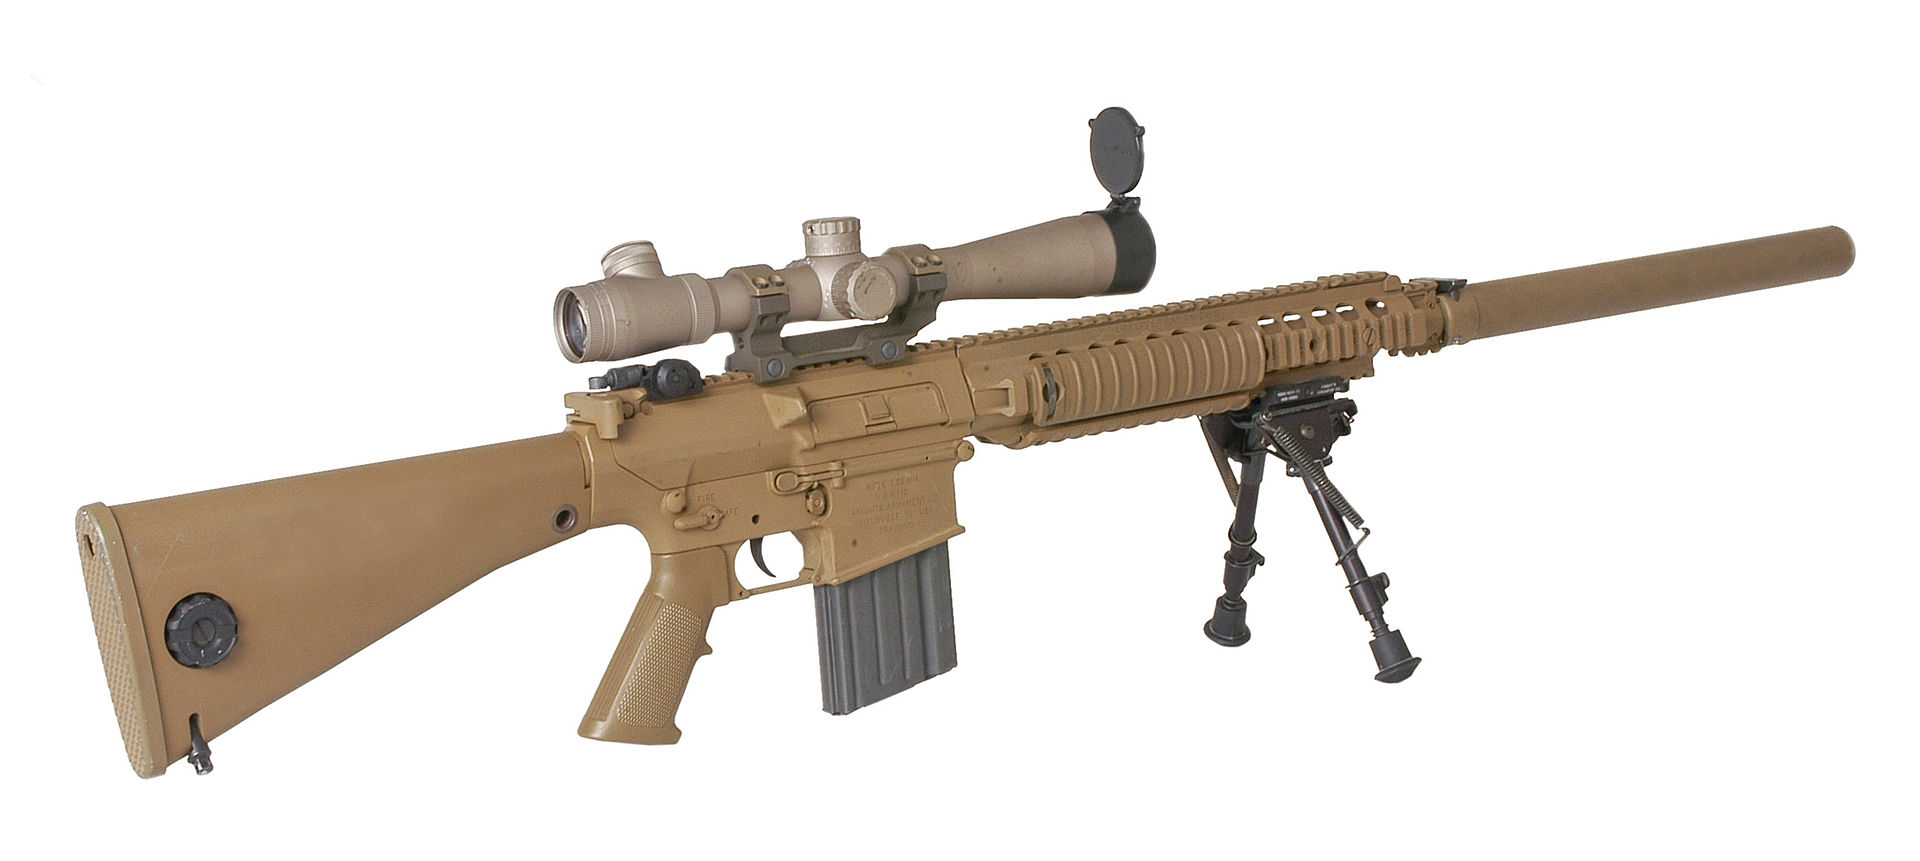 M110 Semi-Automatic Sniper System - Wikipedia M110 Sniper Rifle Suppressed